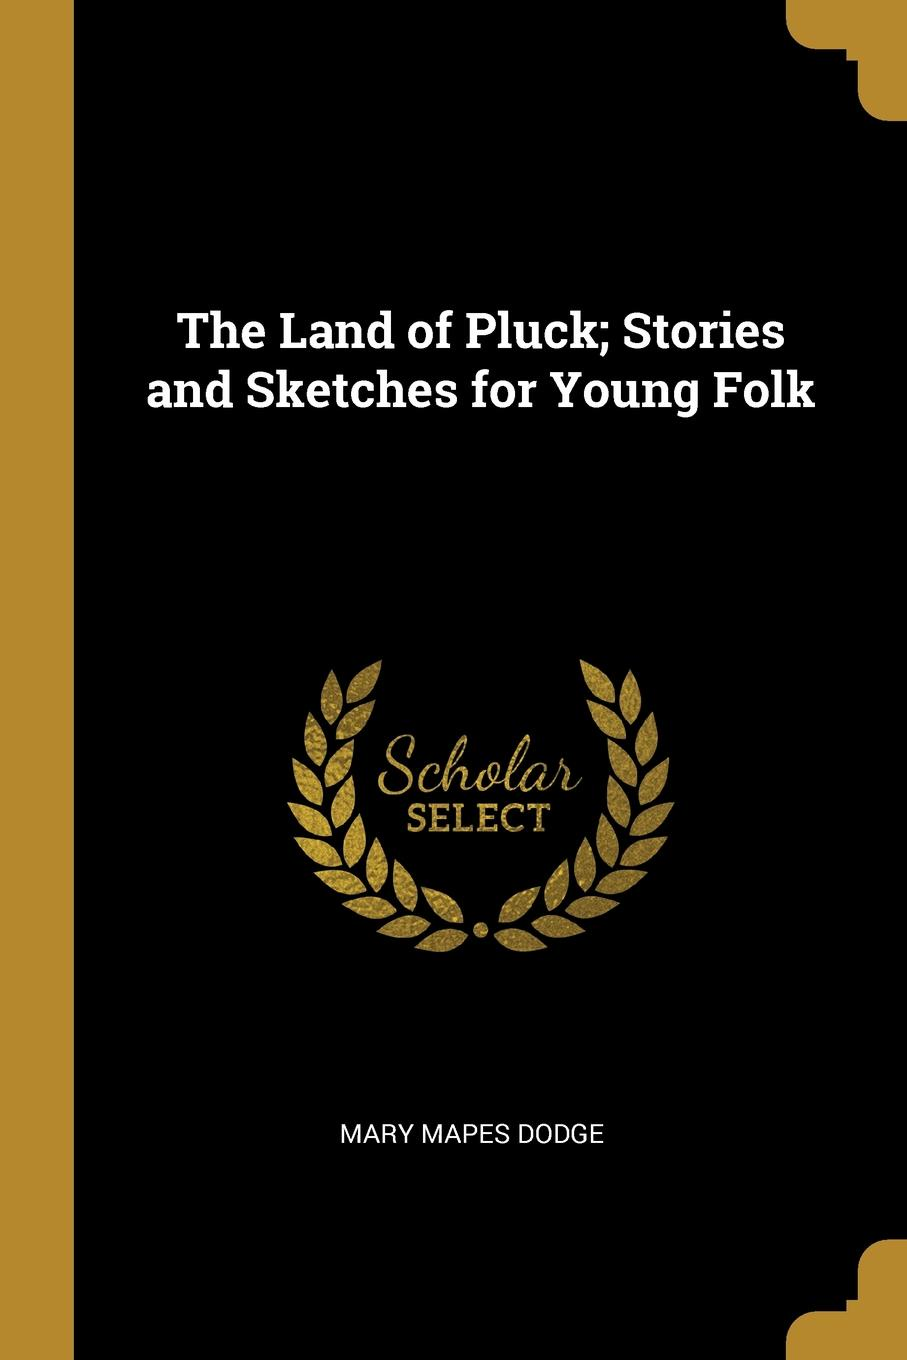 Mary Mapes Dodge. The Land of Pluck; Stories and Sketches for Young Folk